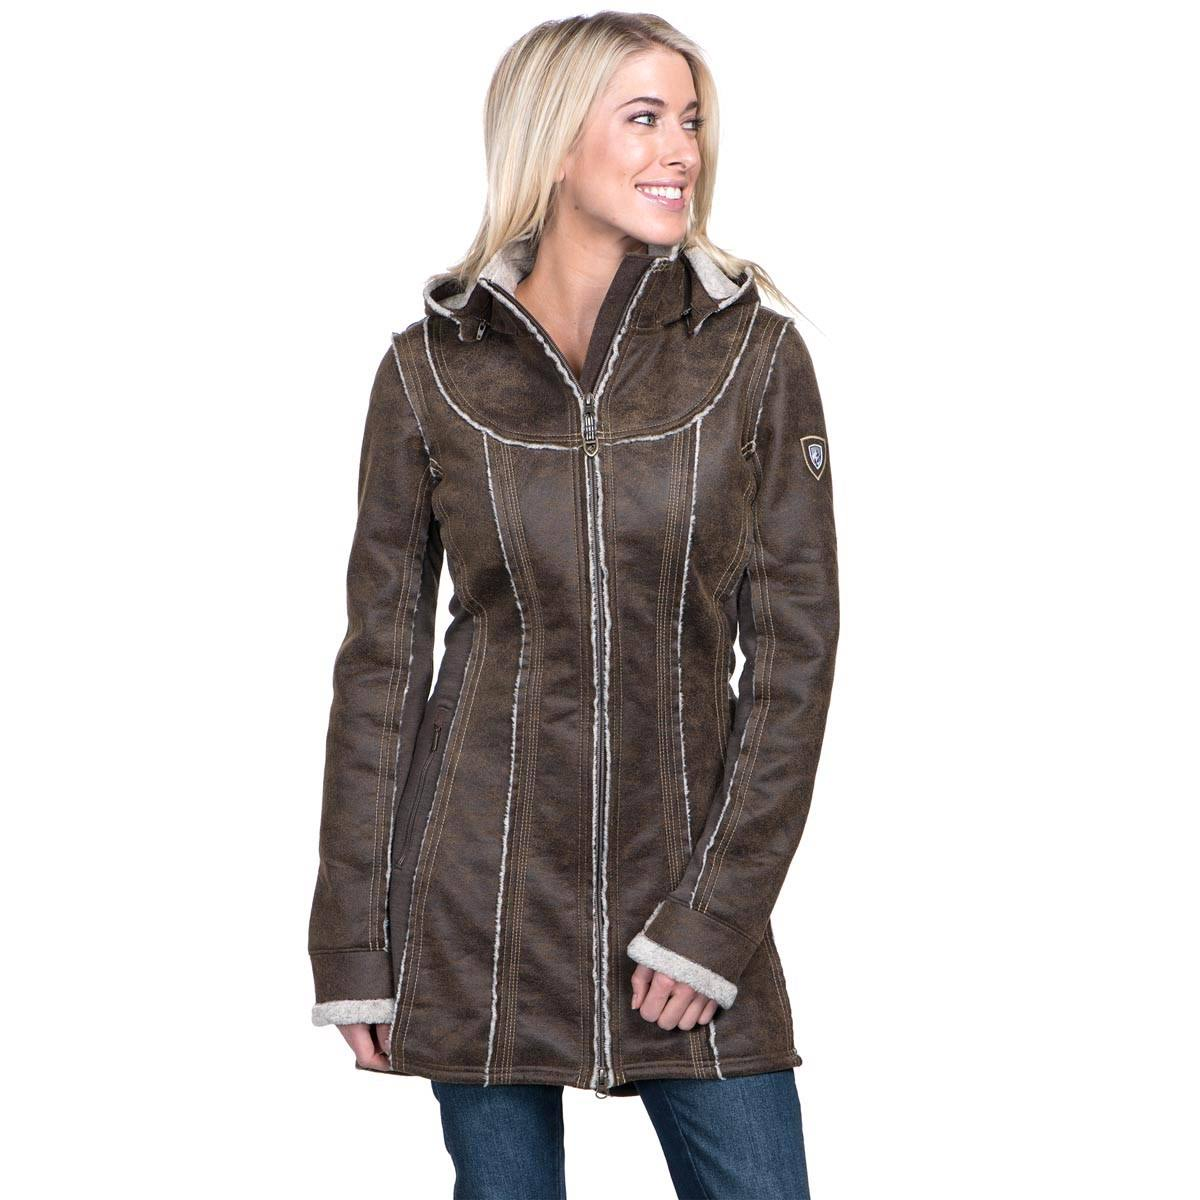 Kuhl Women's Dani Sherpa Trench Coat - Oak, Large